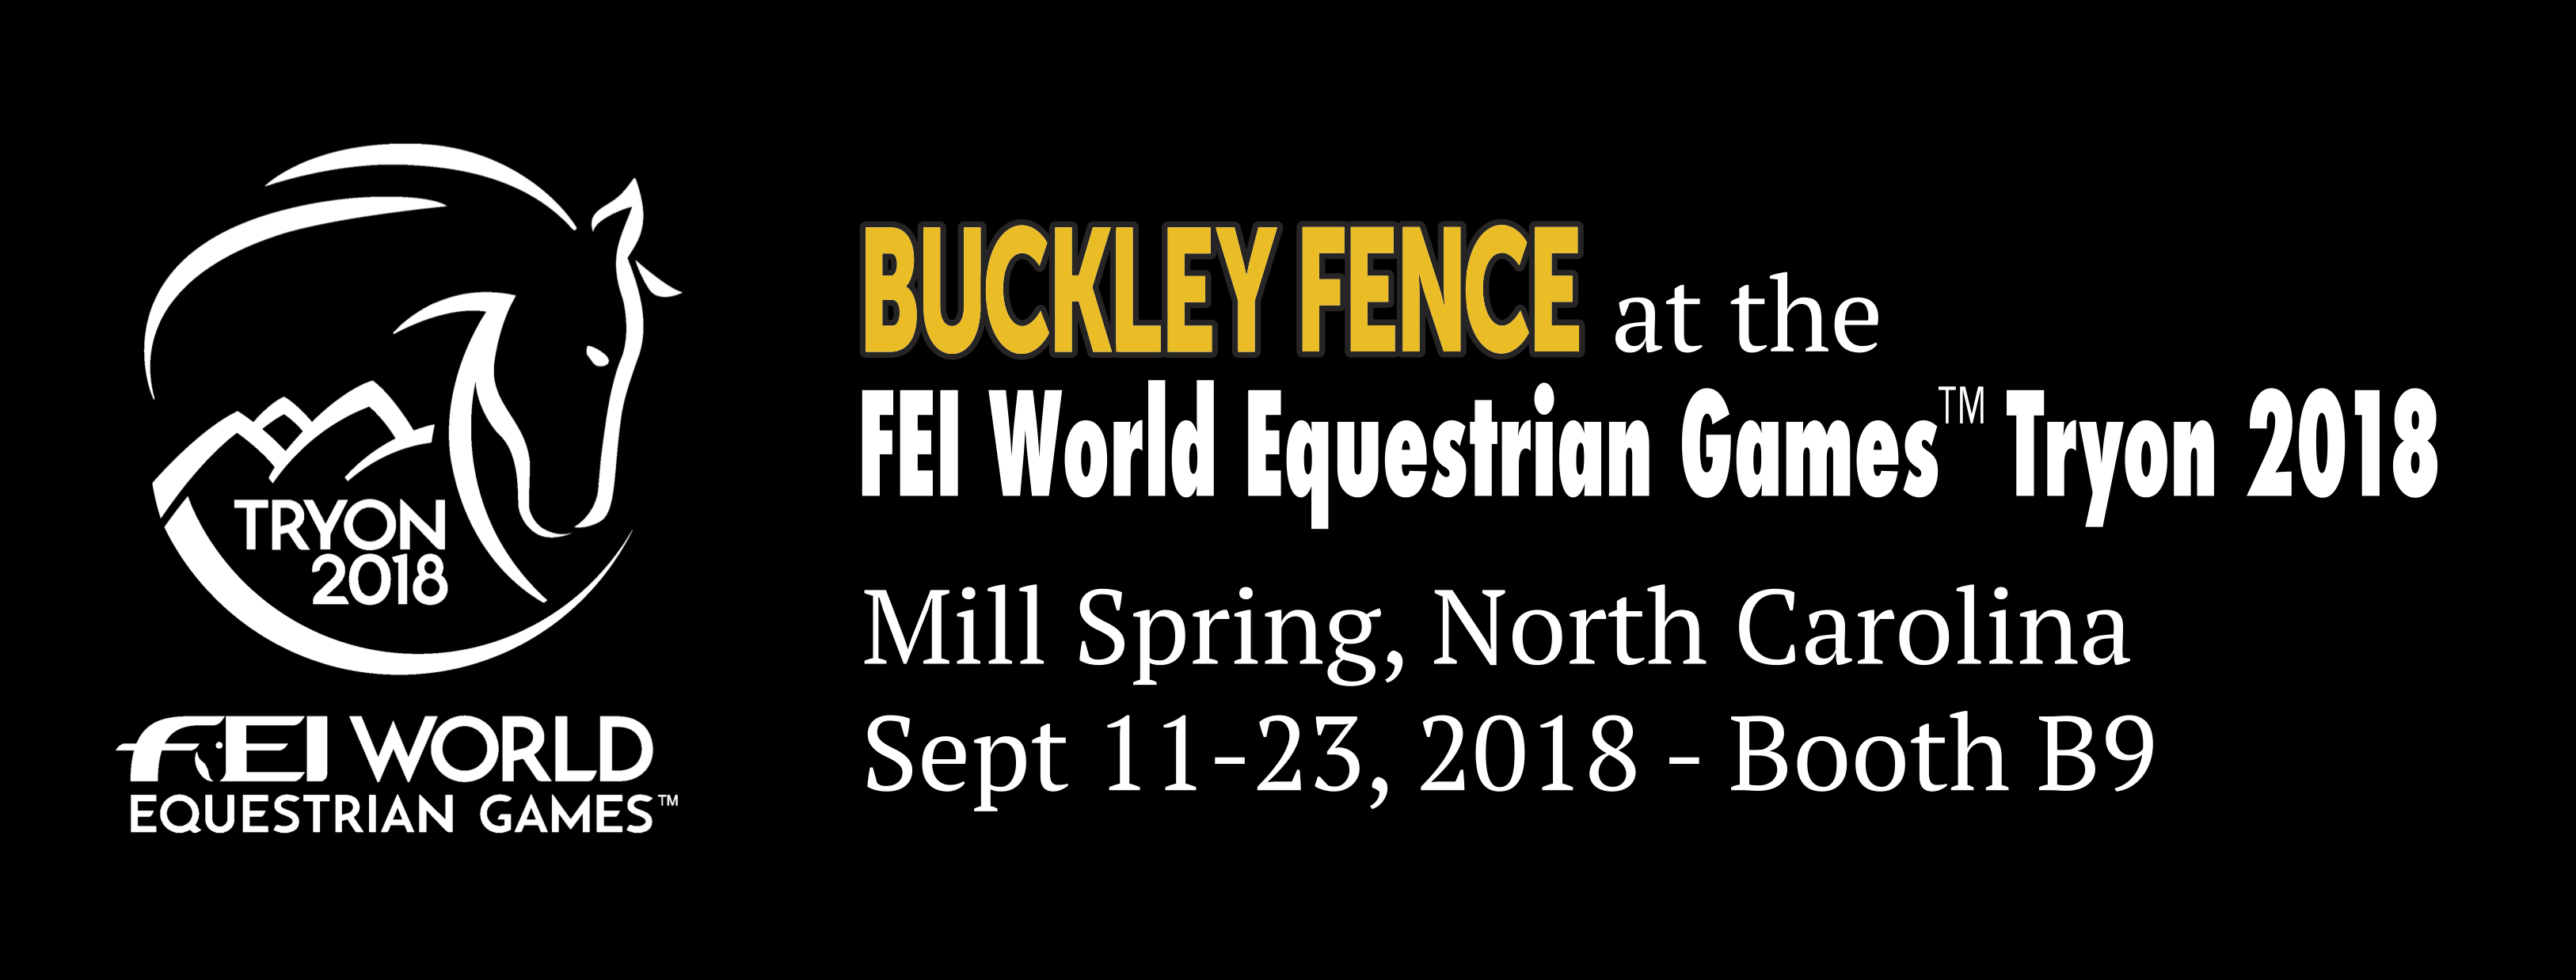 Come See Us! FEI World Equestrian Games Tryon 2018